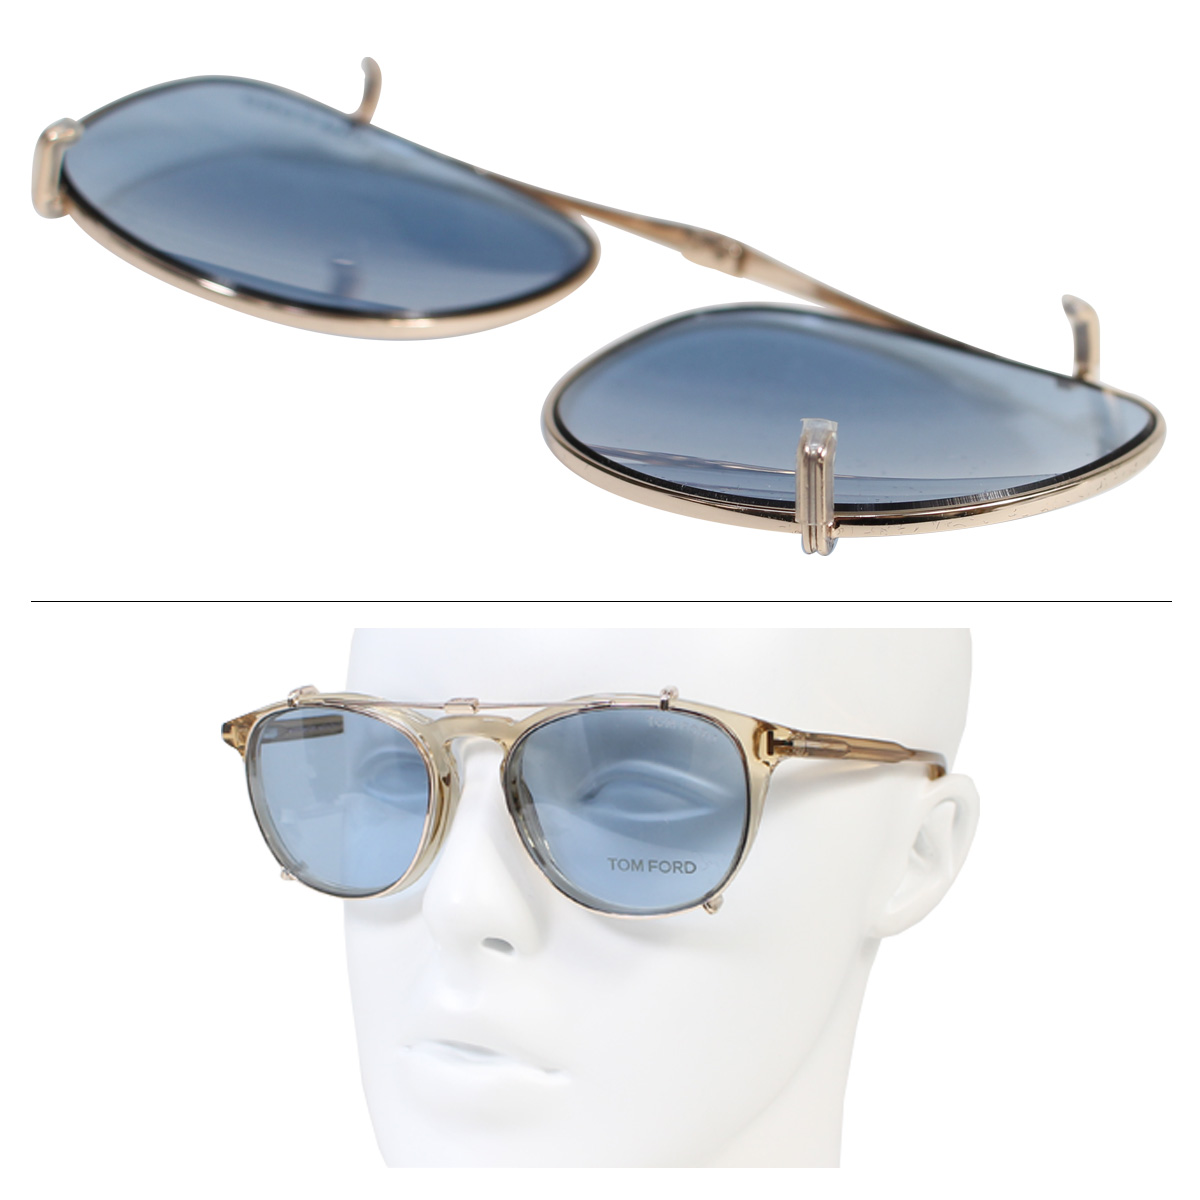 524a3dad2d Tom Ford sunglasses mens Womens TOM FORD eyewear lens replacement CL METAL  CLIP ON FT5401-CL Italy- 11   22 new in stock